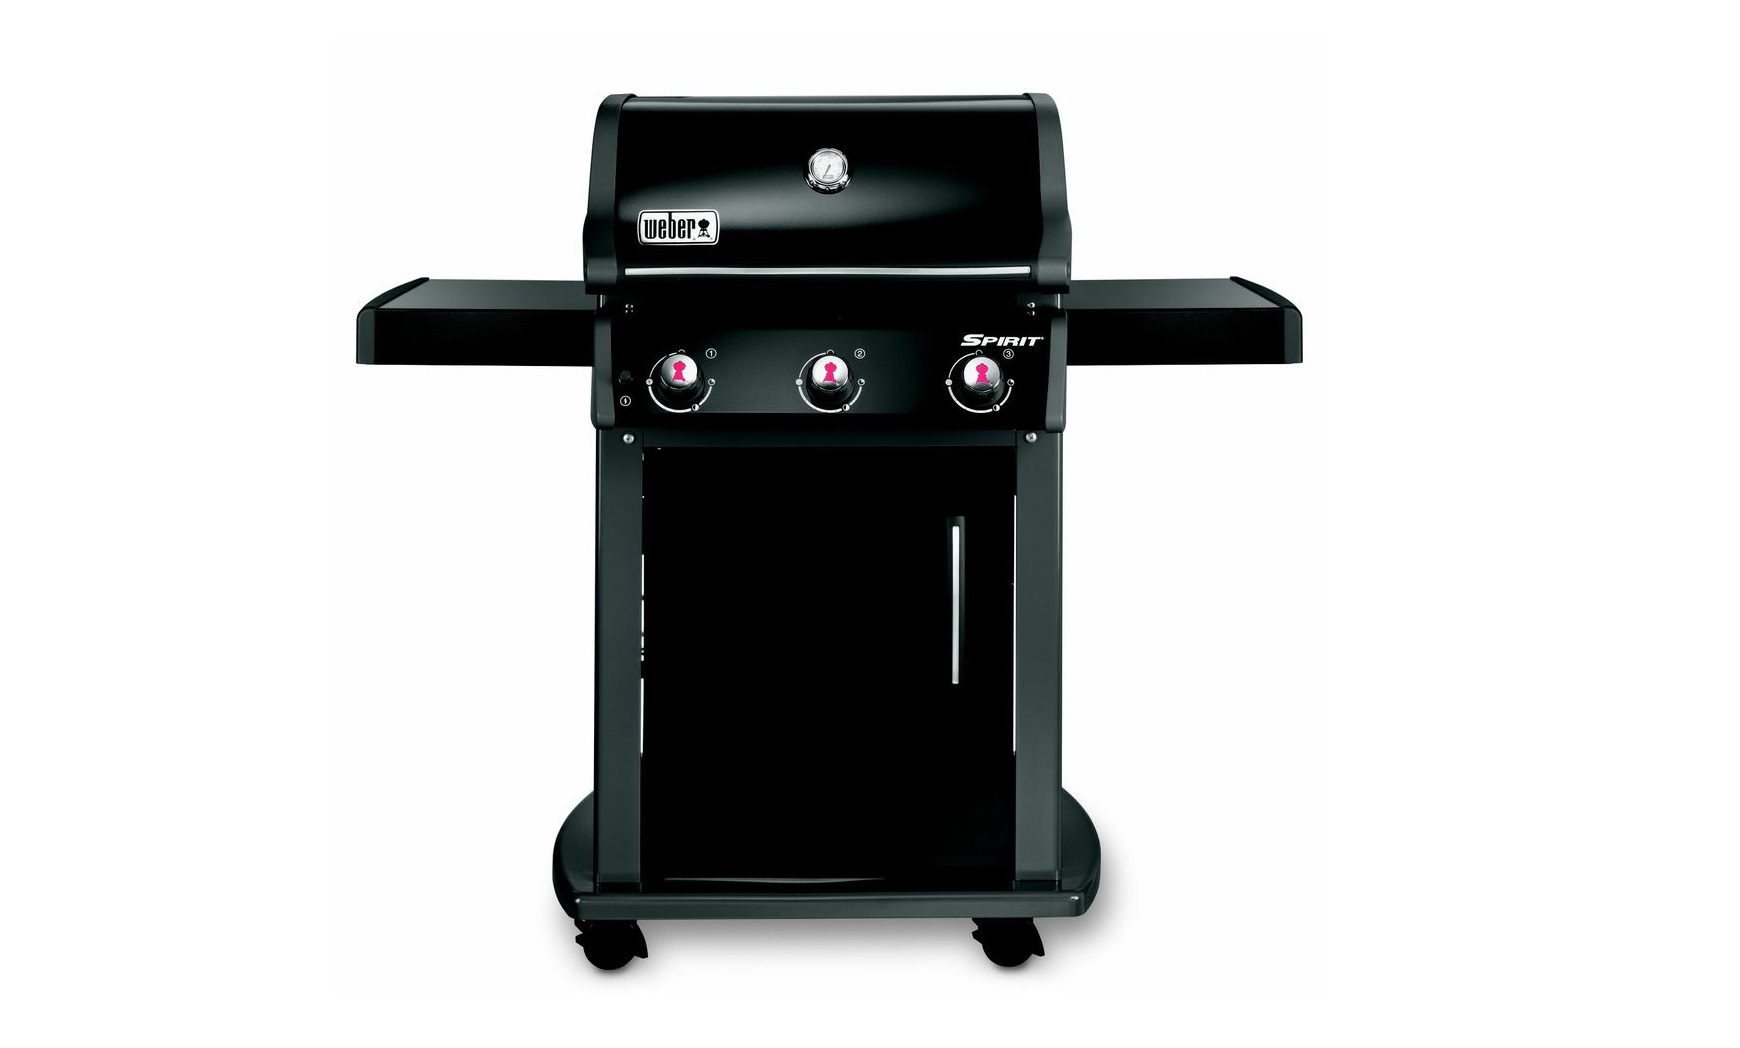 weber spirit original e 310 gas bbq norwich camping. Black Bedroom Furniture Sets. Home Design Ideas